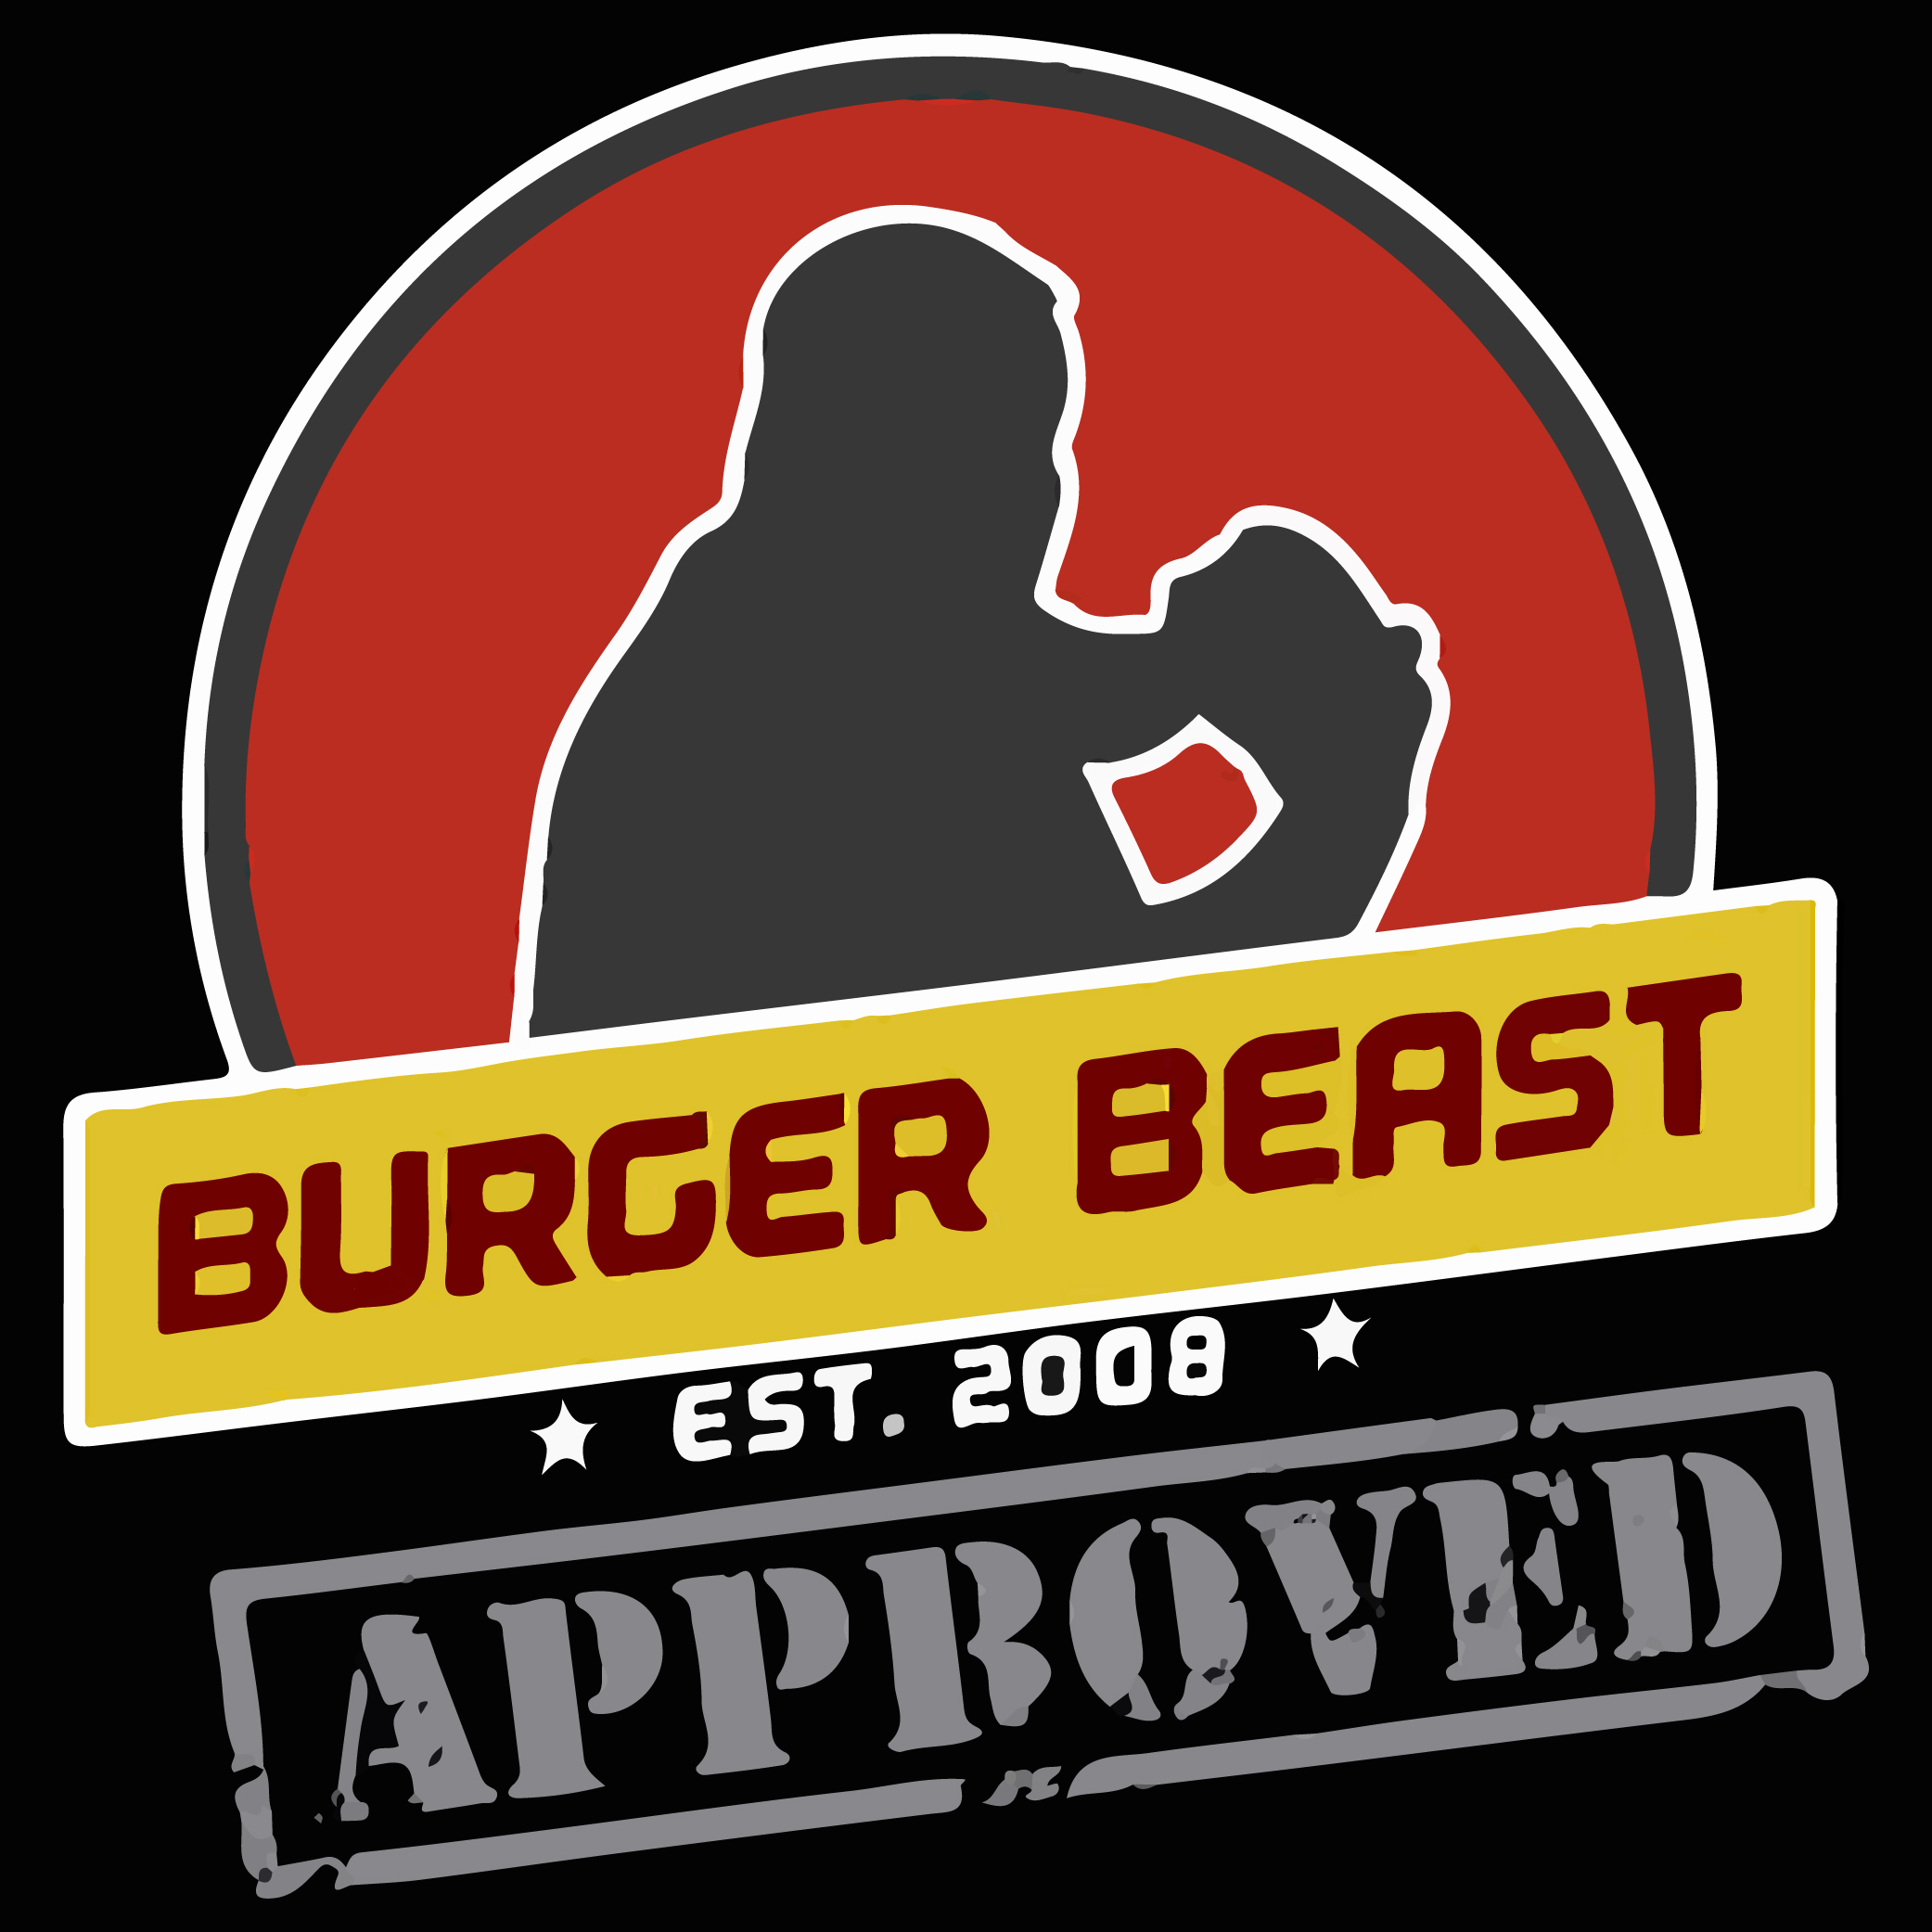 burger beast approved